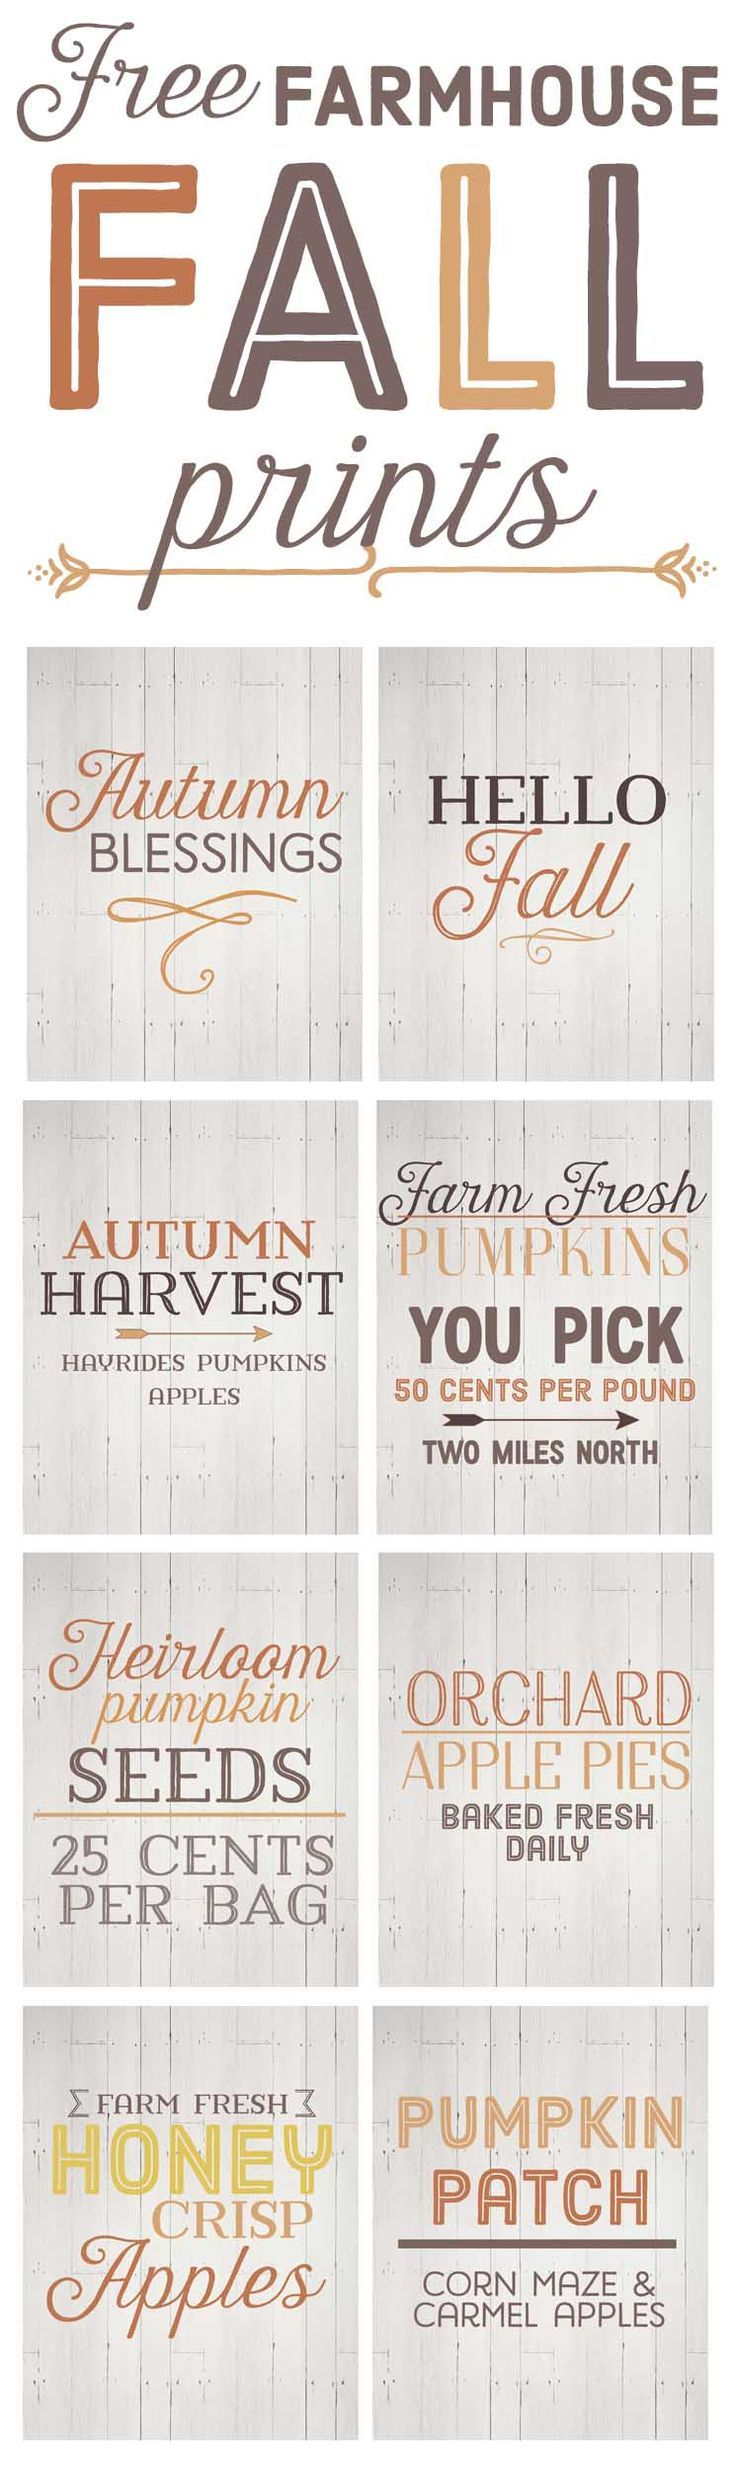 Free Fall Farmhouse Printables Free Thanksgiving And Cricut - Delicate fall decor ideas for this autumn